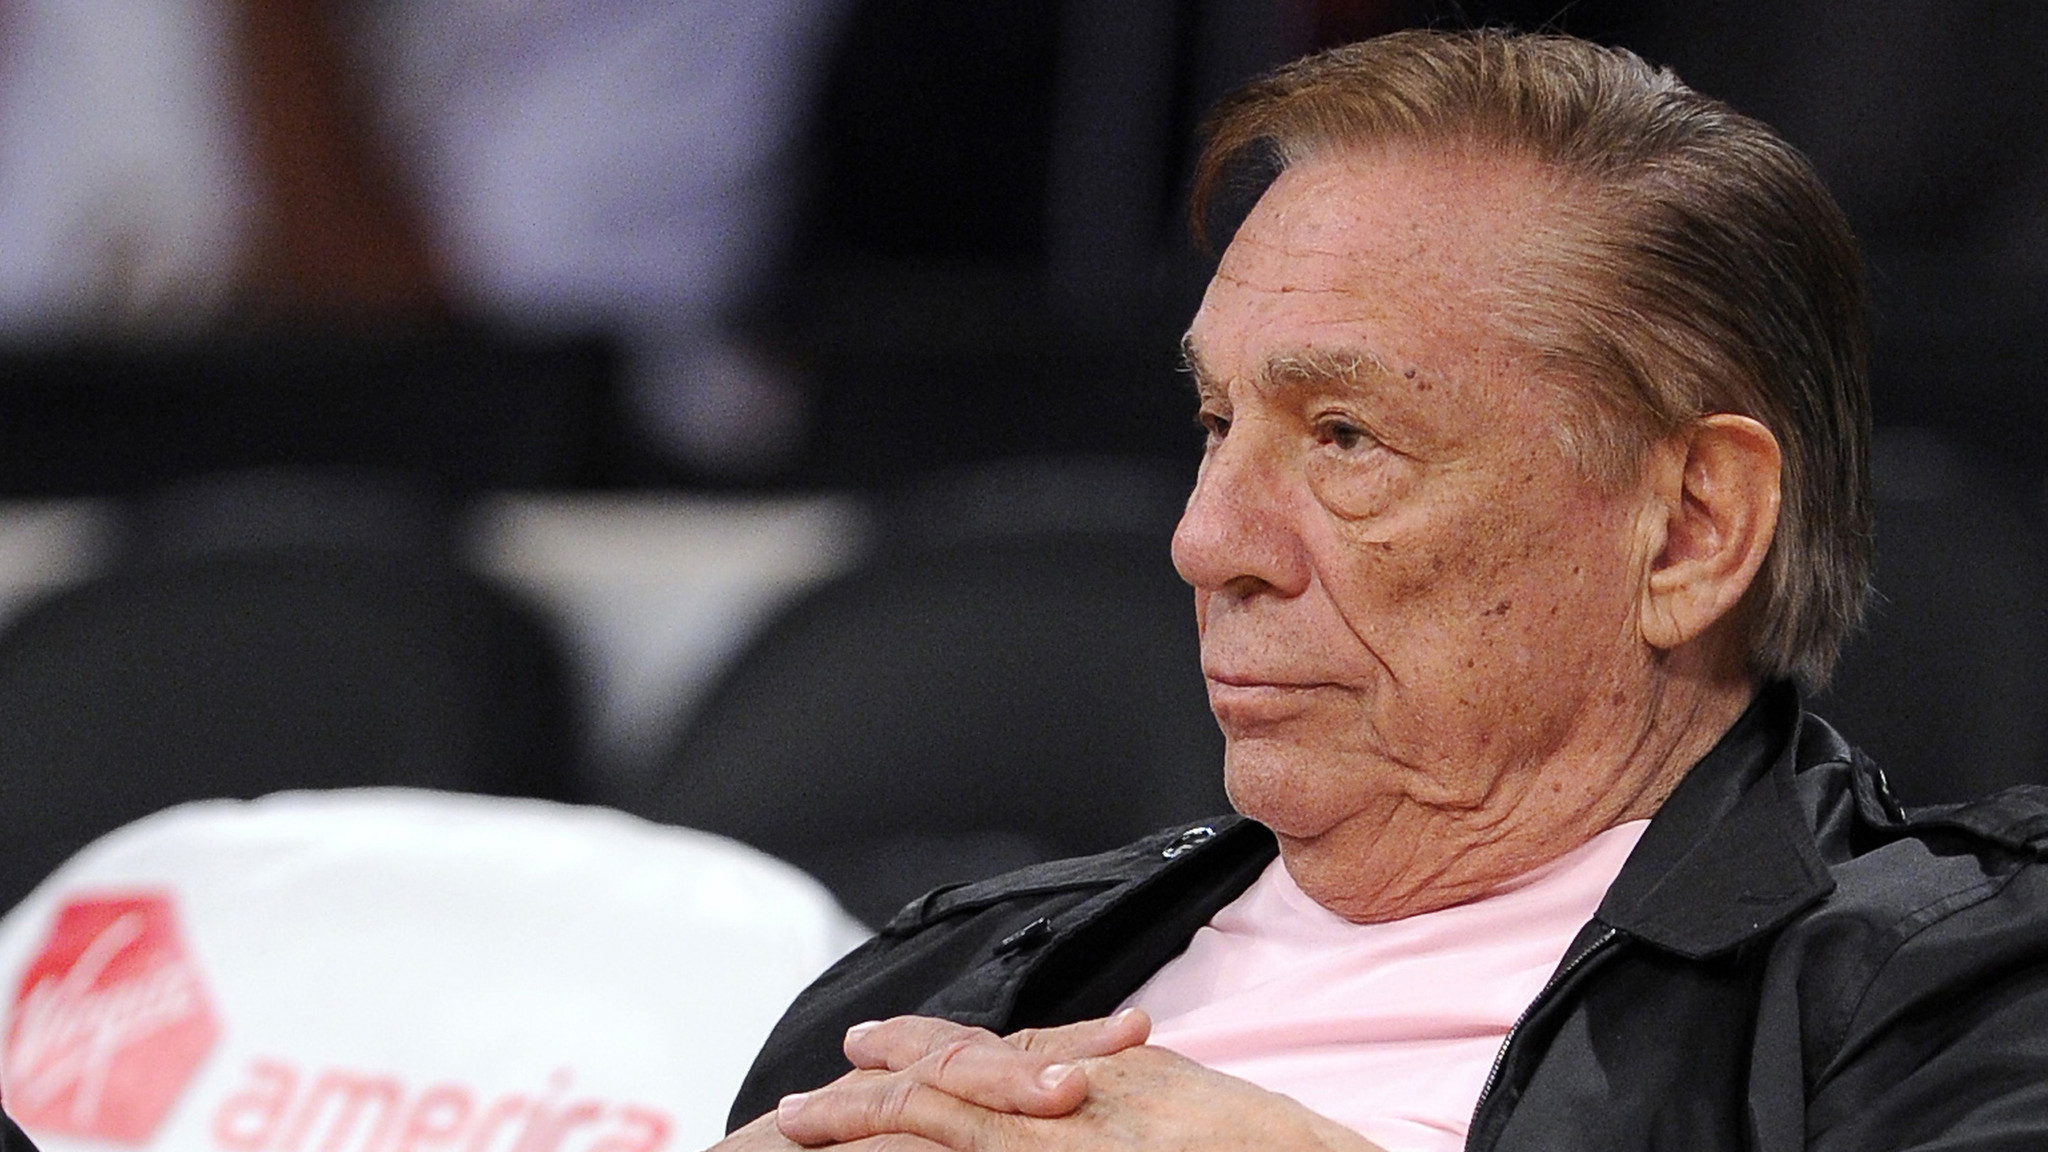 an analysis of the donald sterling case The question raised by nba's stephen a smith, spike lee, and several nba players, current and past, is why is it taking so long to fire donald sterling nba commissioner adam silver was.